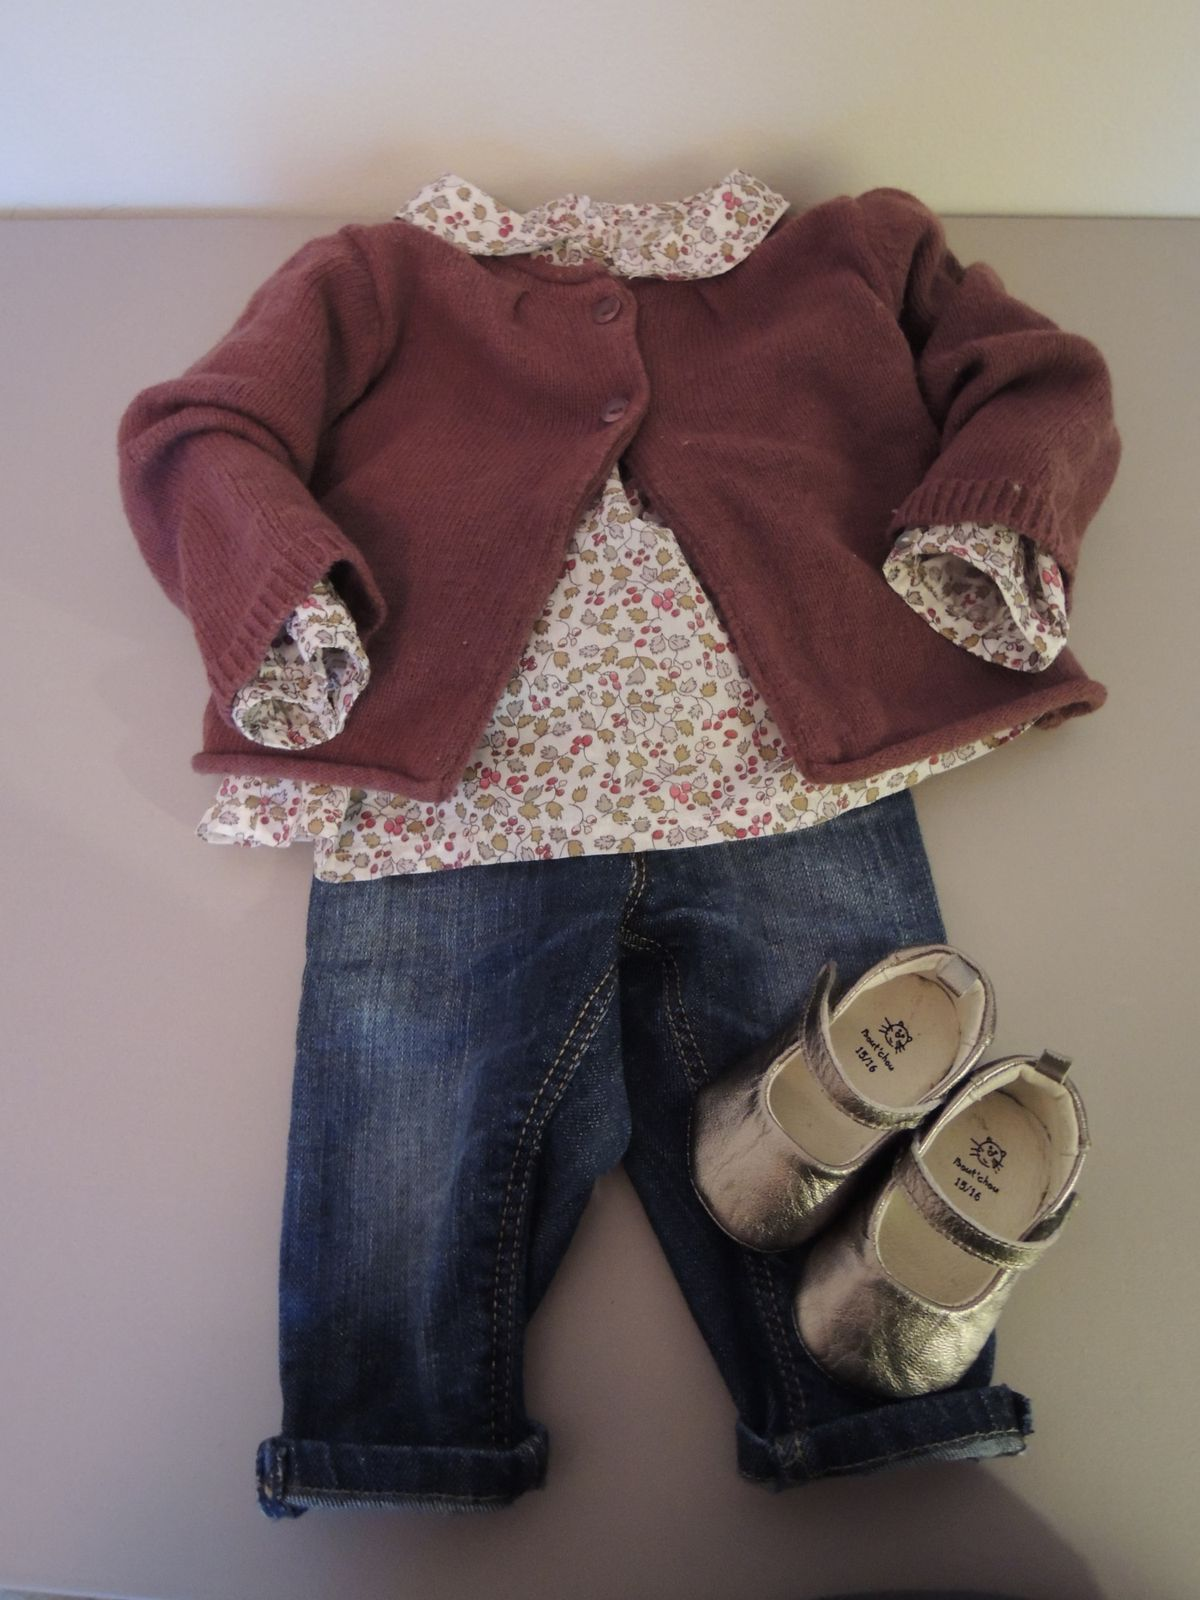 Gilet Z, blouse DPAM, jeans H&m, shoes Bout'chou